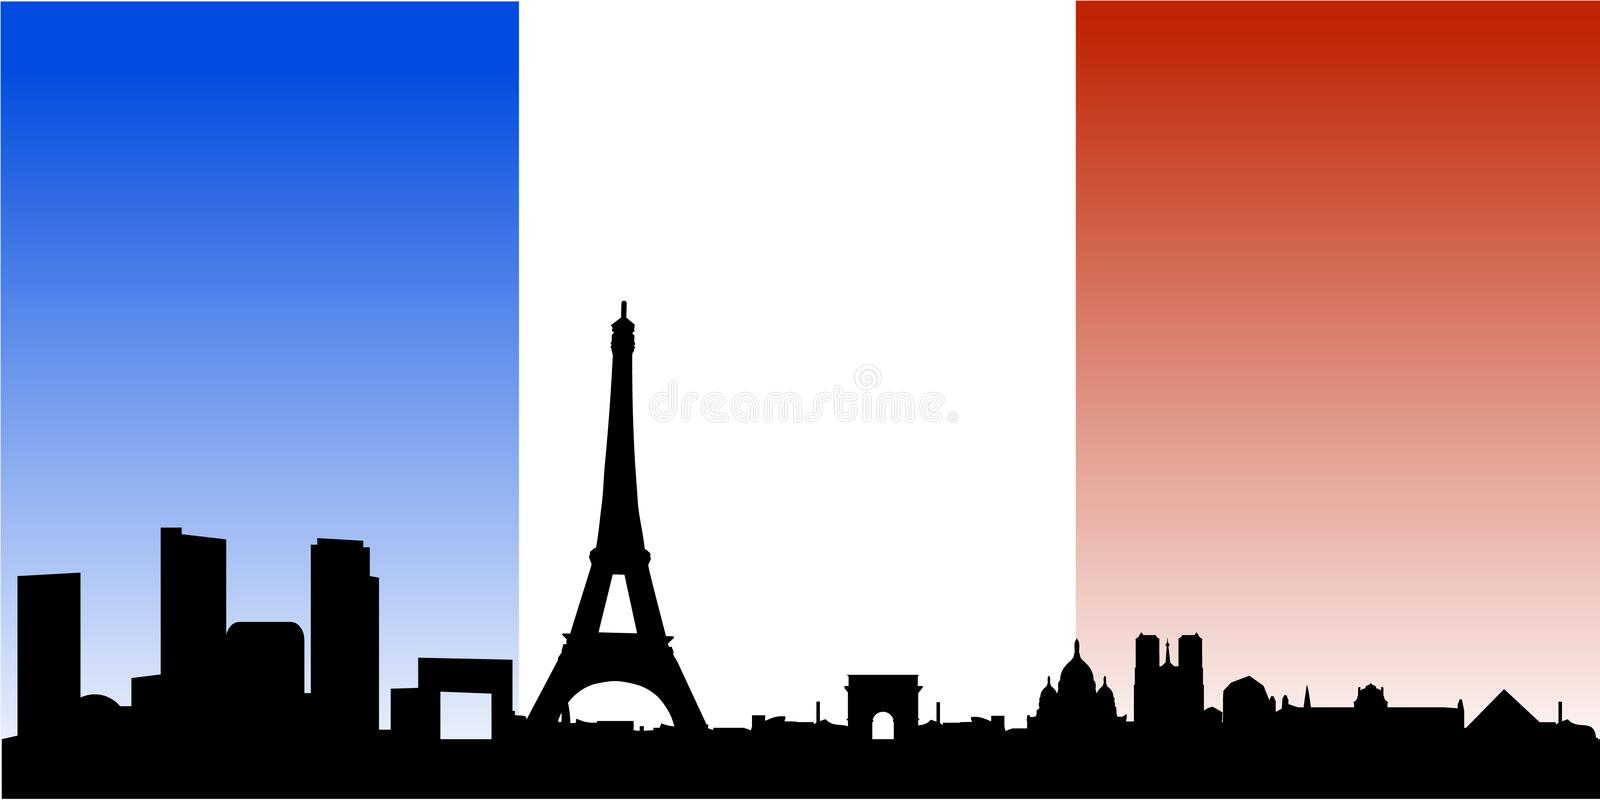 Paris skyline with french flag. Vector illustration of paris with landmarks and monuments as eiffel tower, arch of triumph and montmartre, with the national flag